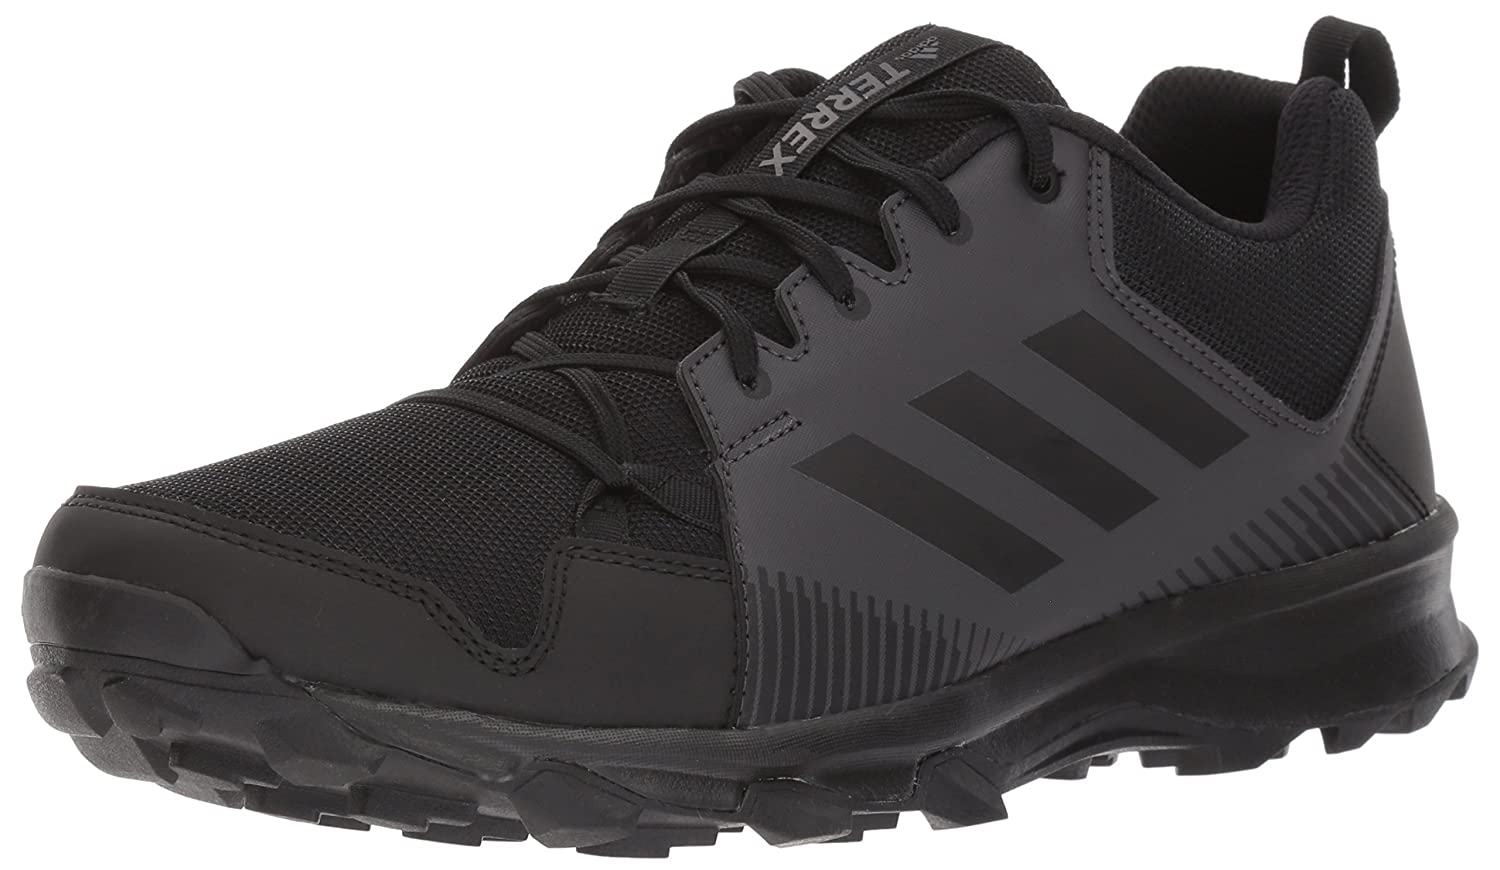 Adidas Outdoor Men's Terrex Tracerocker Trail Running shoes, Black Black Utility Black, 8 D US